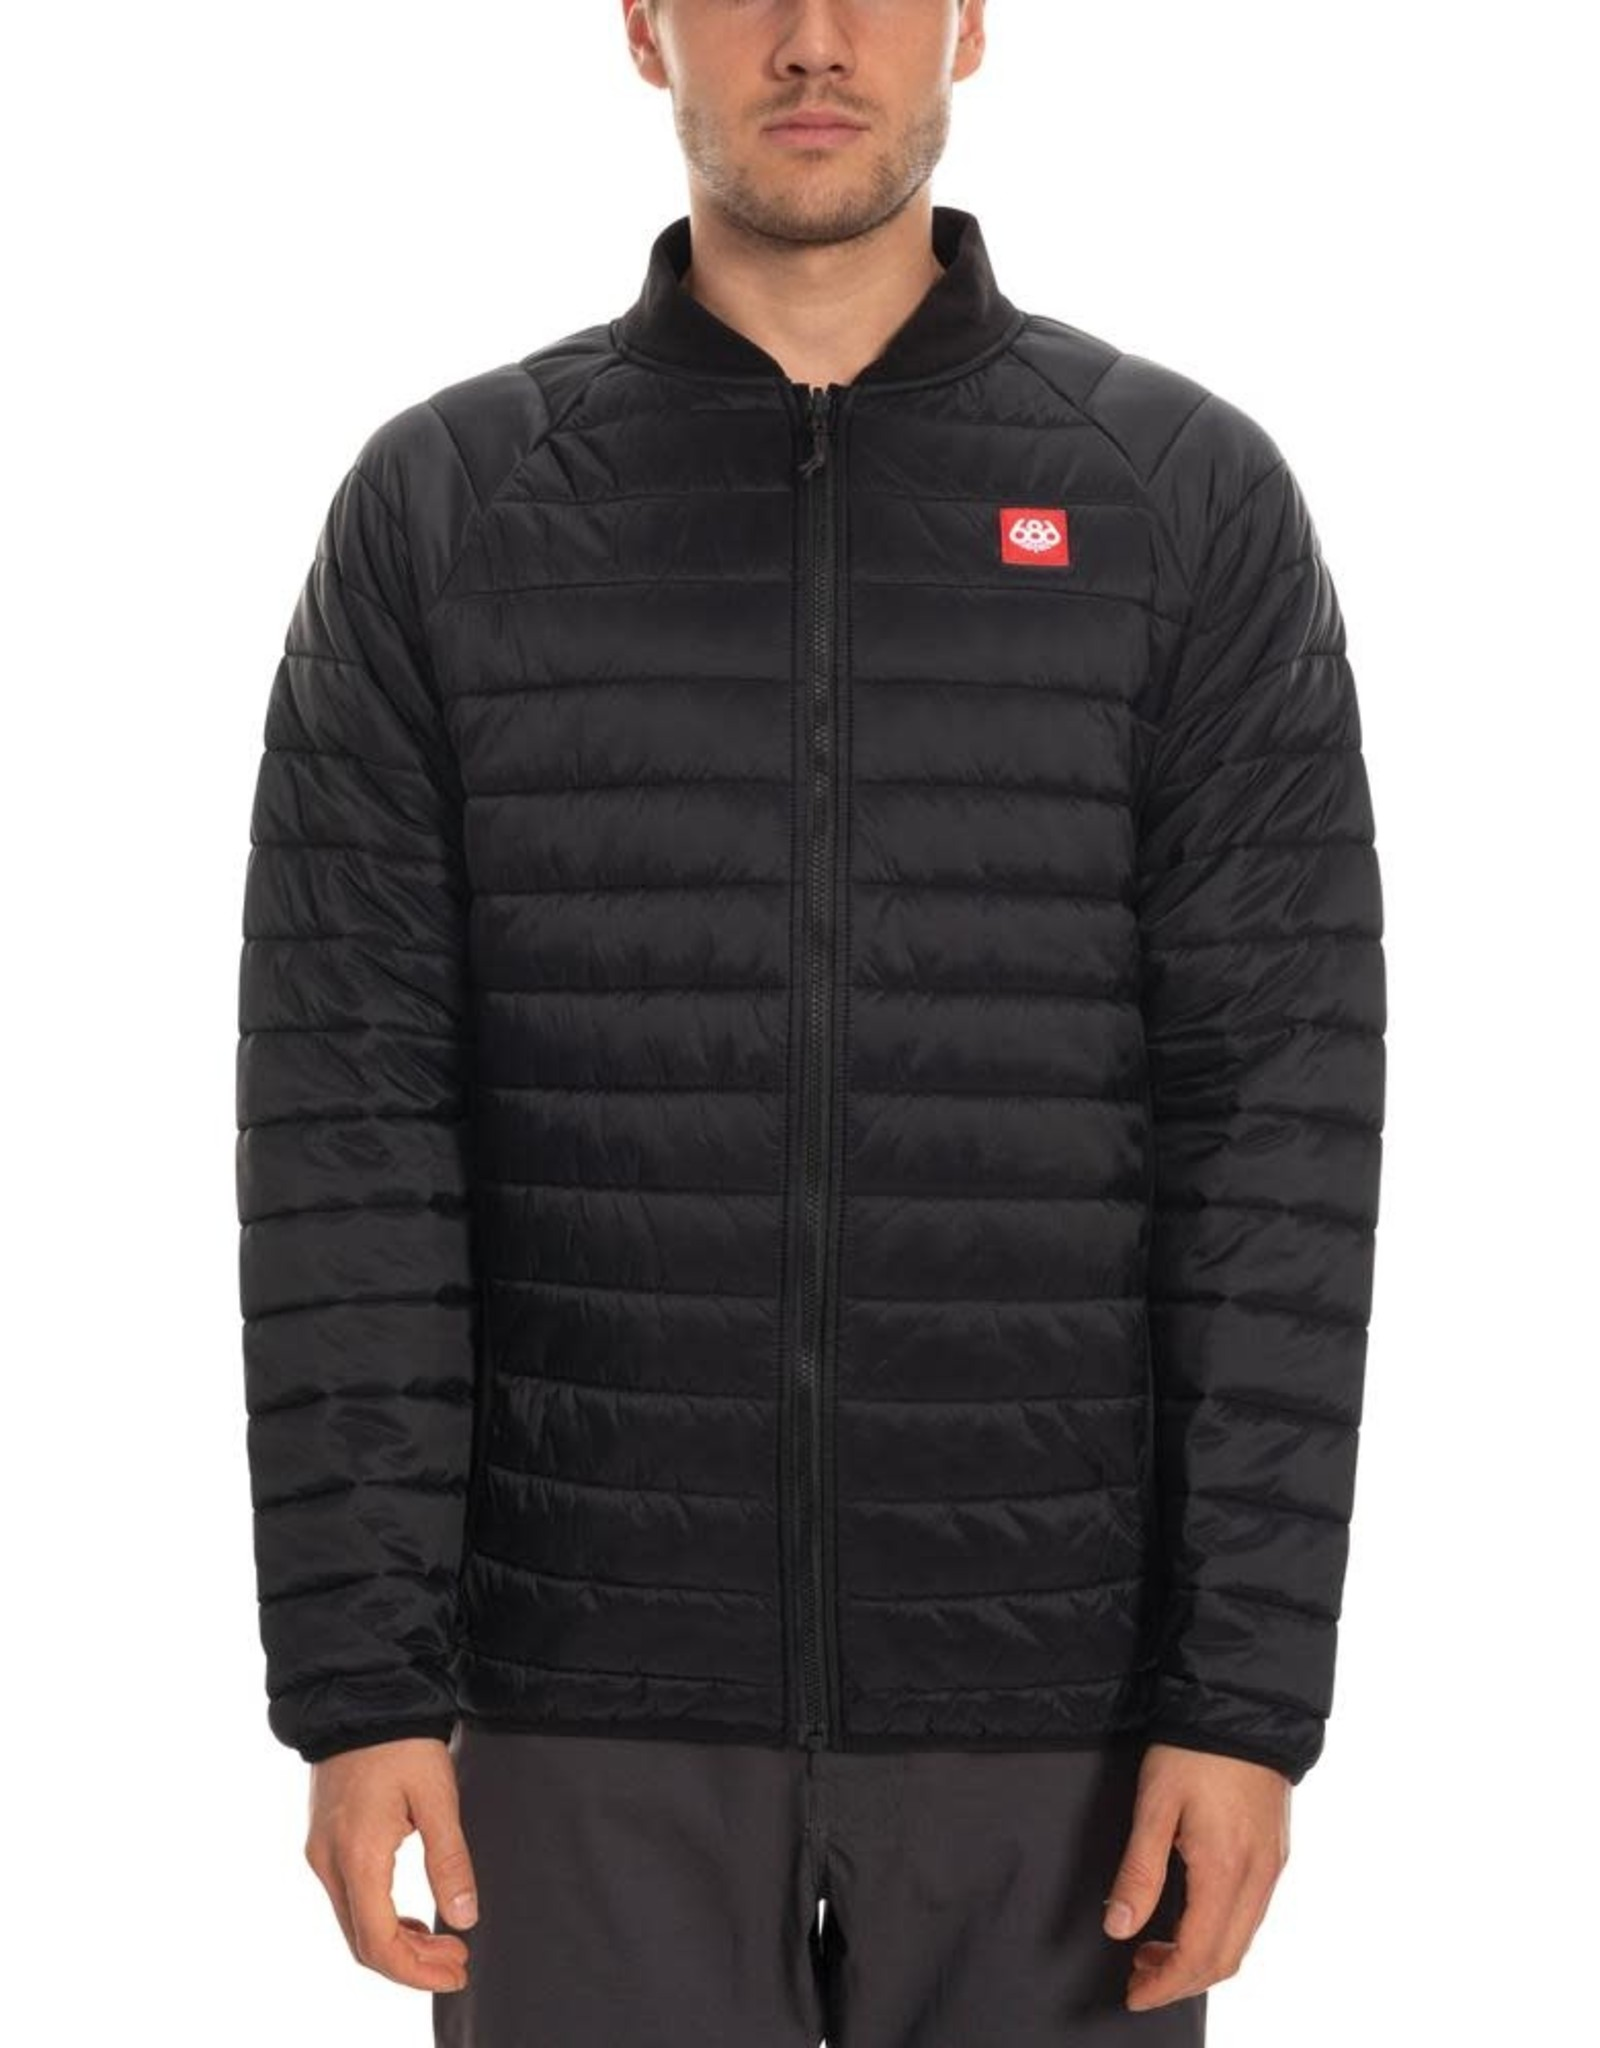 686 M's Thermal Puff Jacket